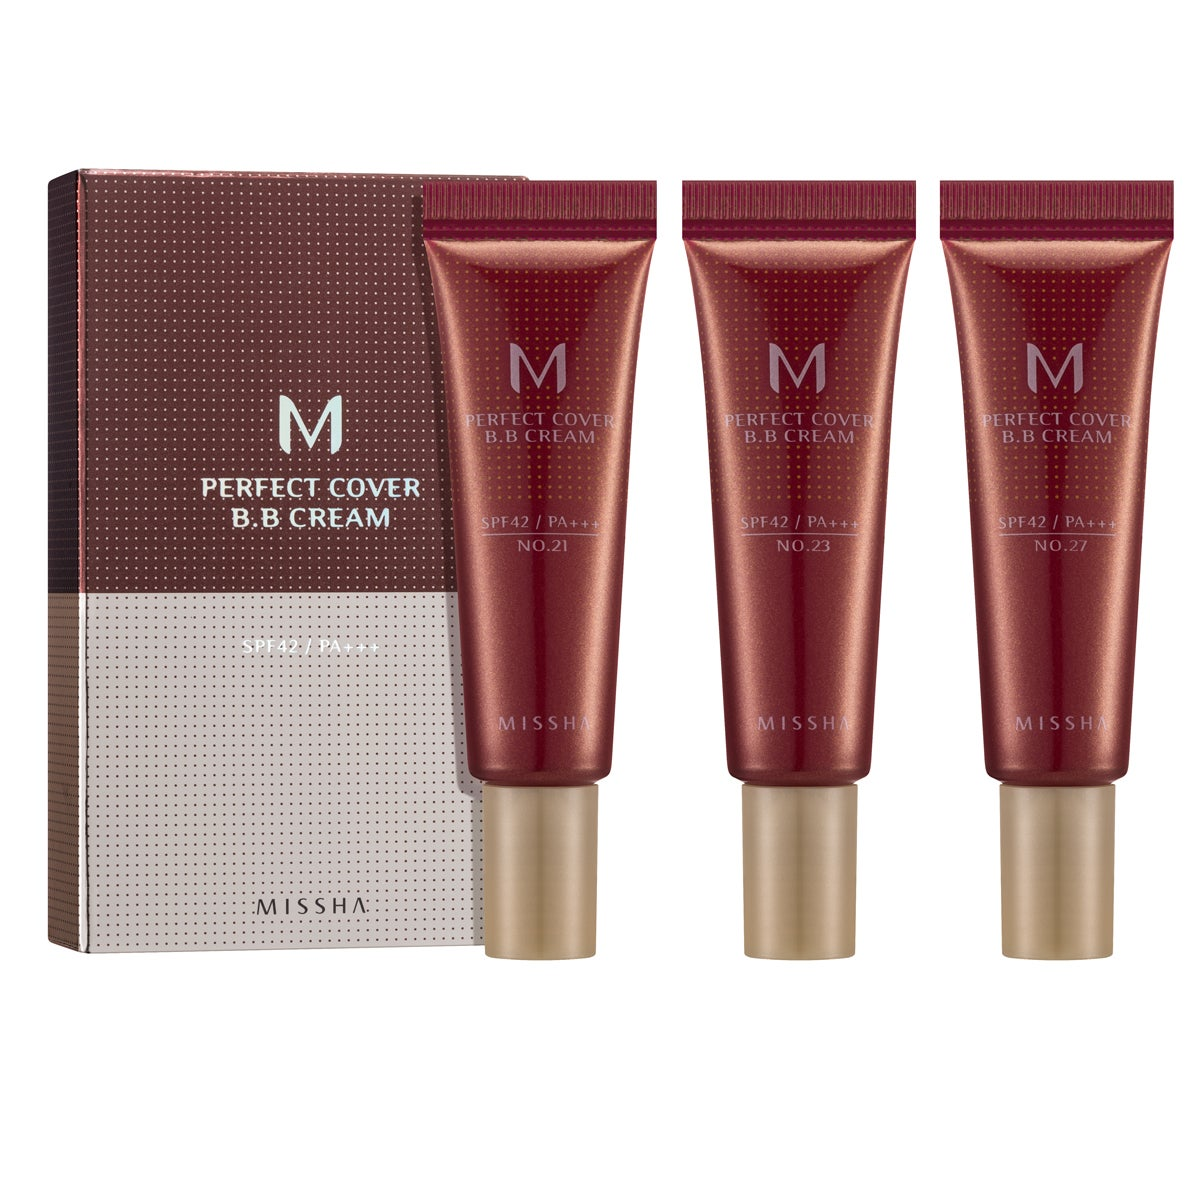 MISSHA M Perfect Cover BB Cream Trial Kit A